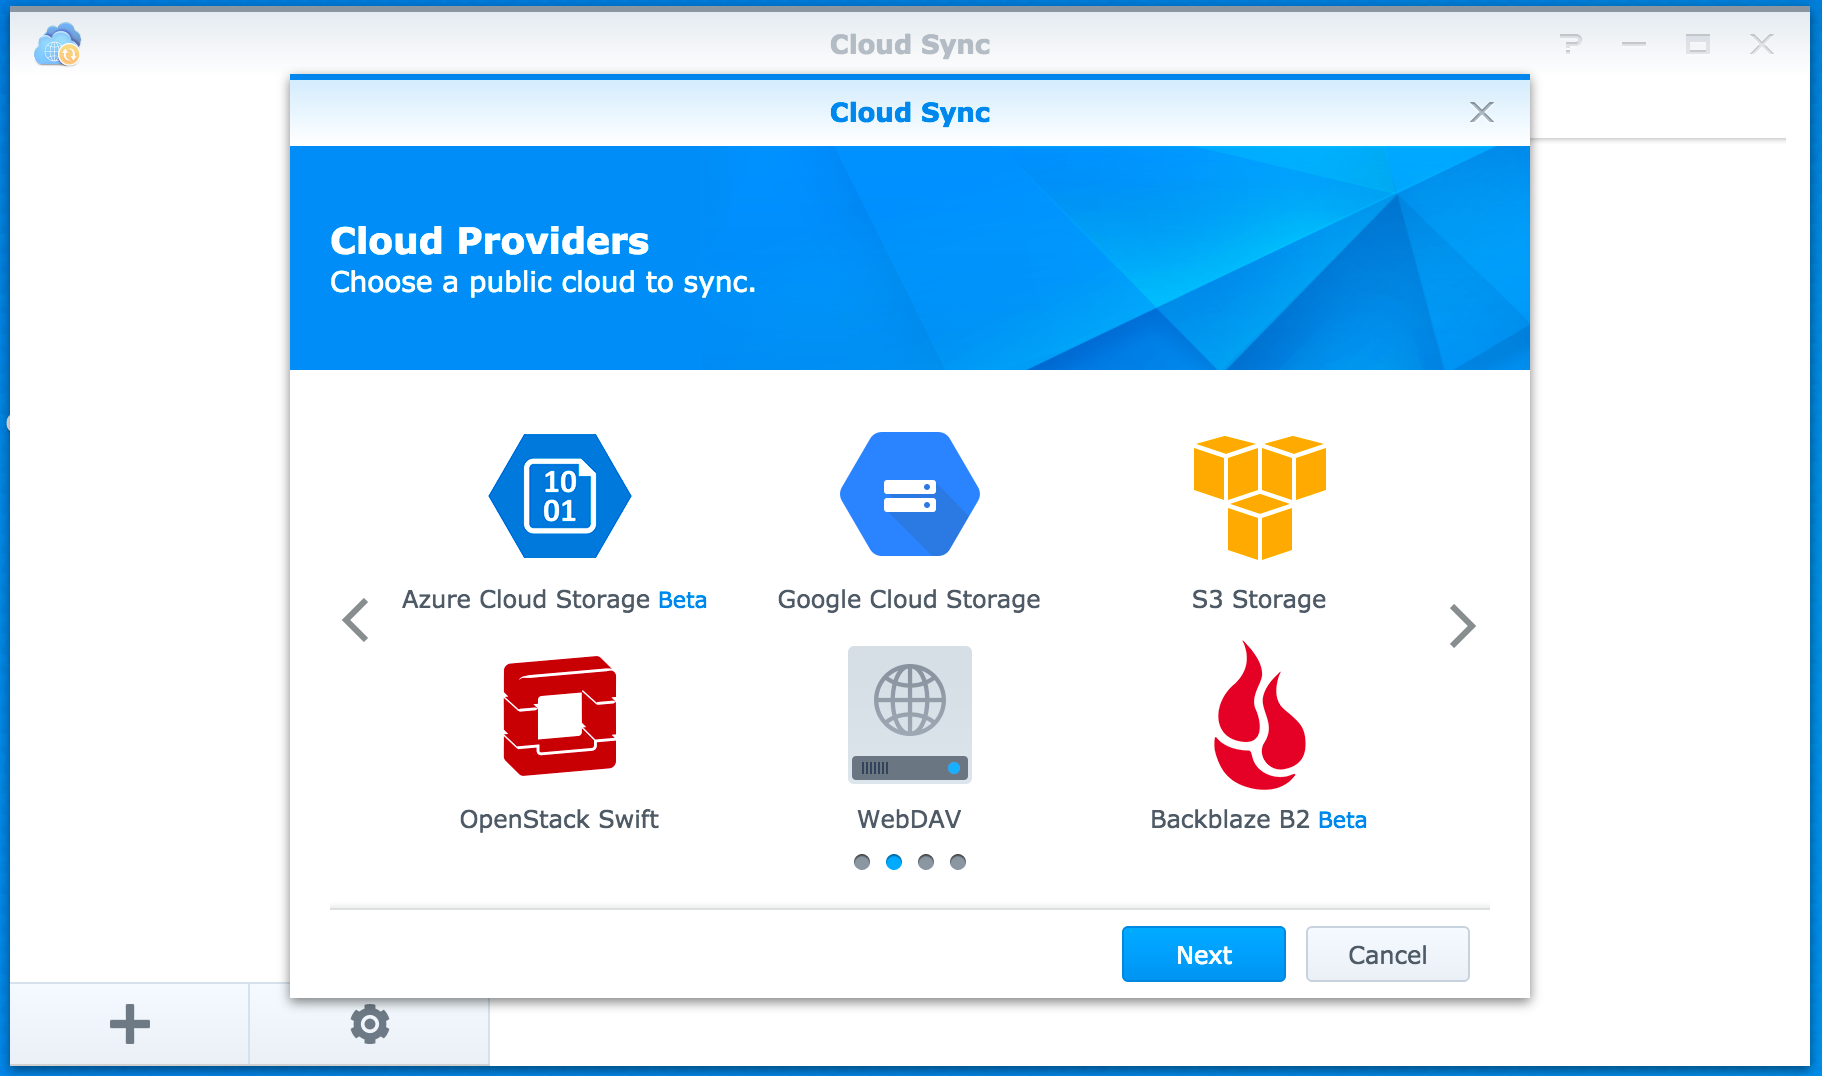 Synology NAS and Backblaze B2 Cloud Storage